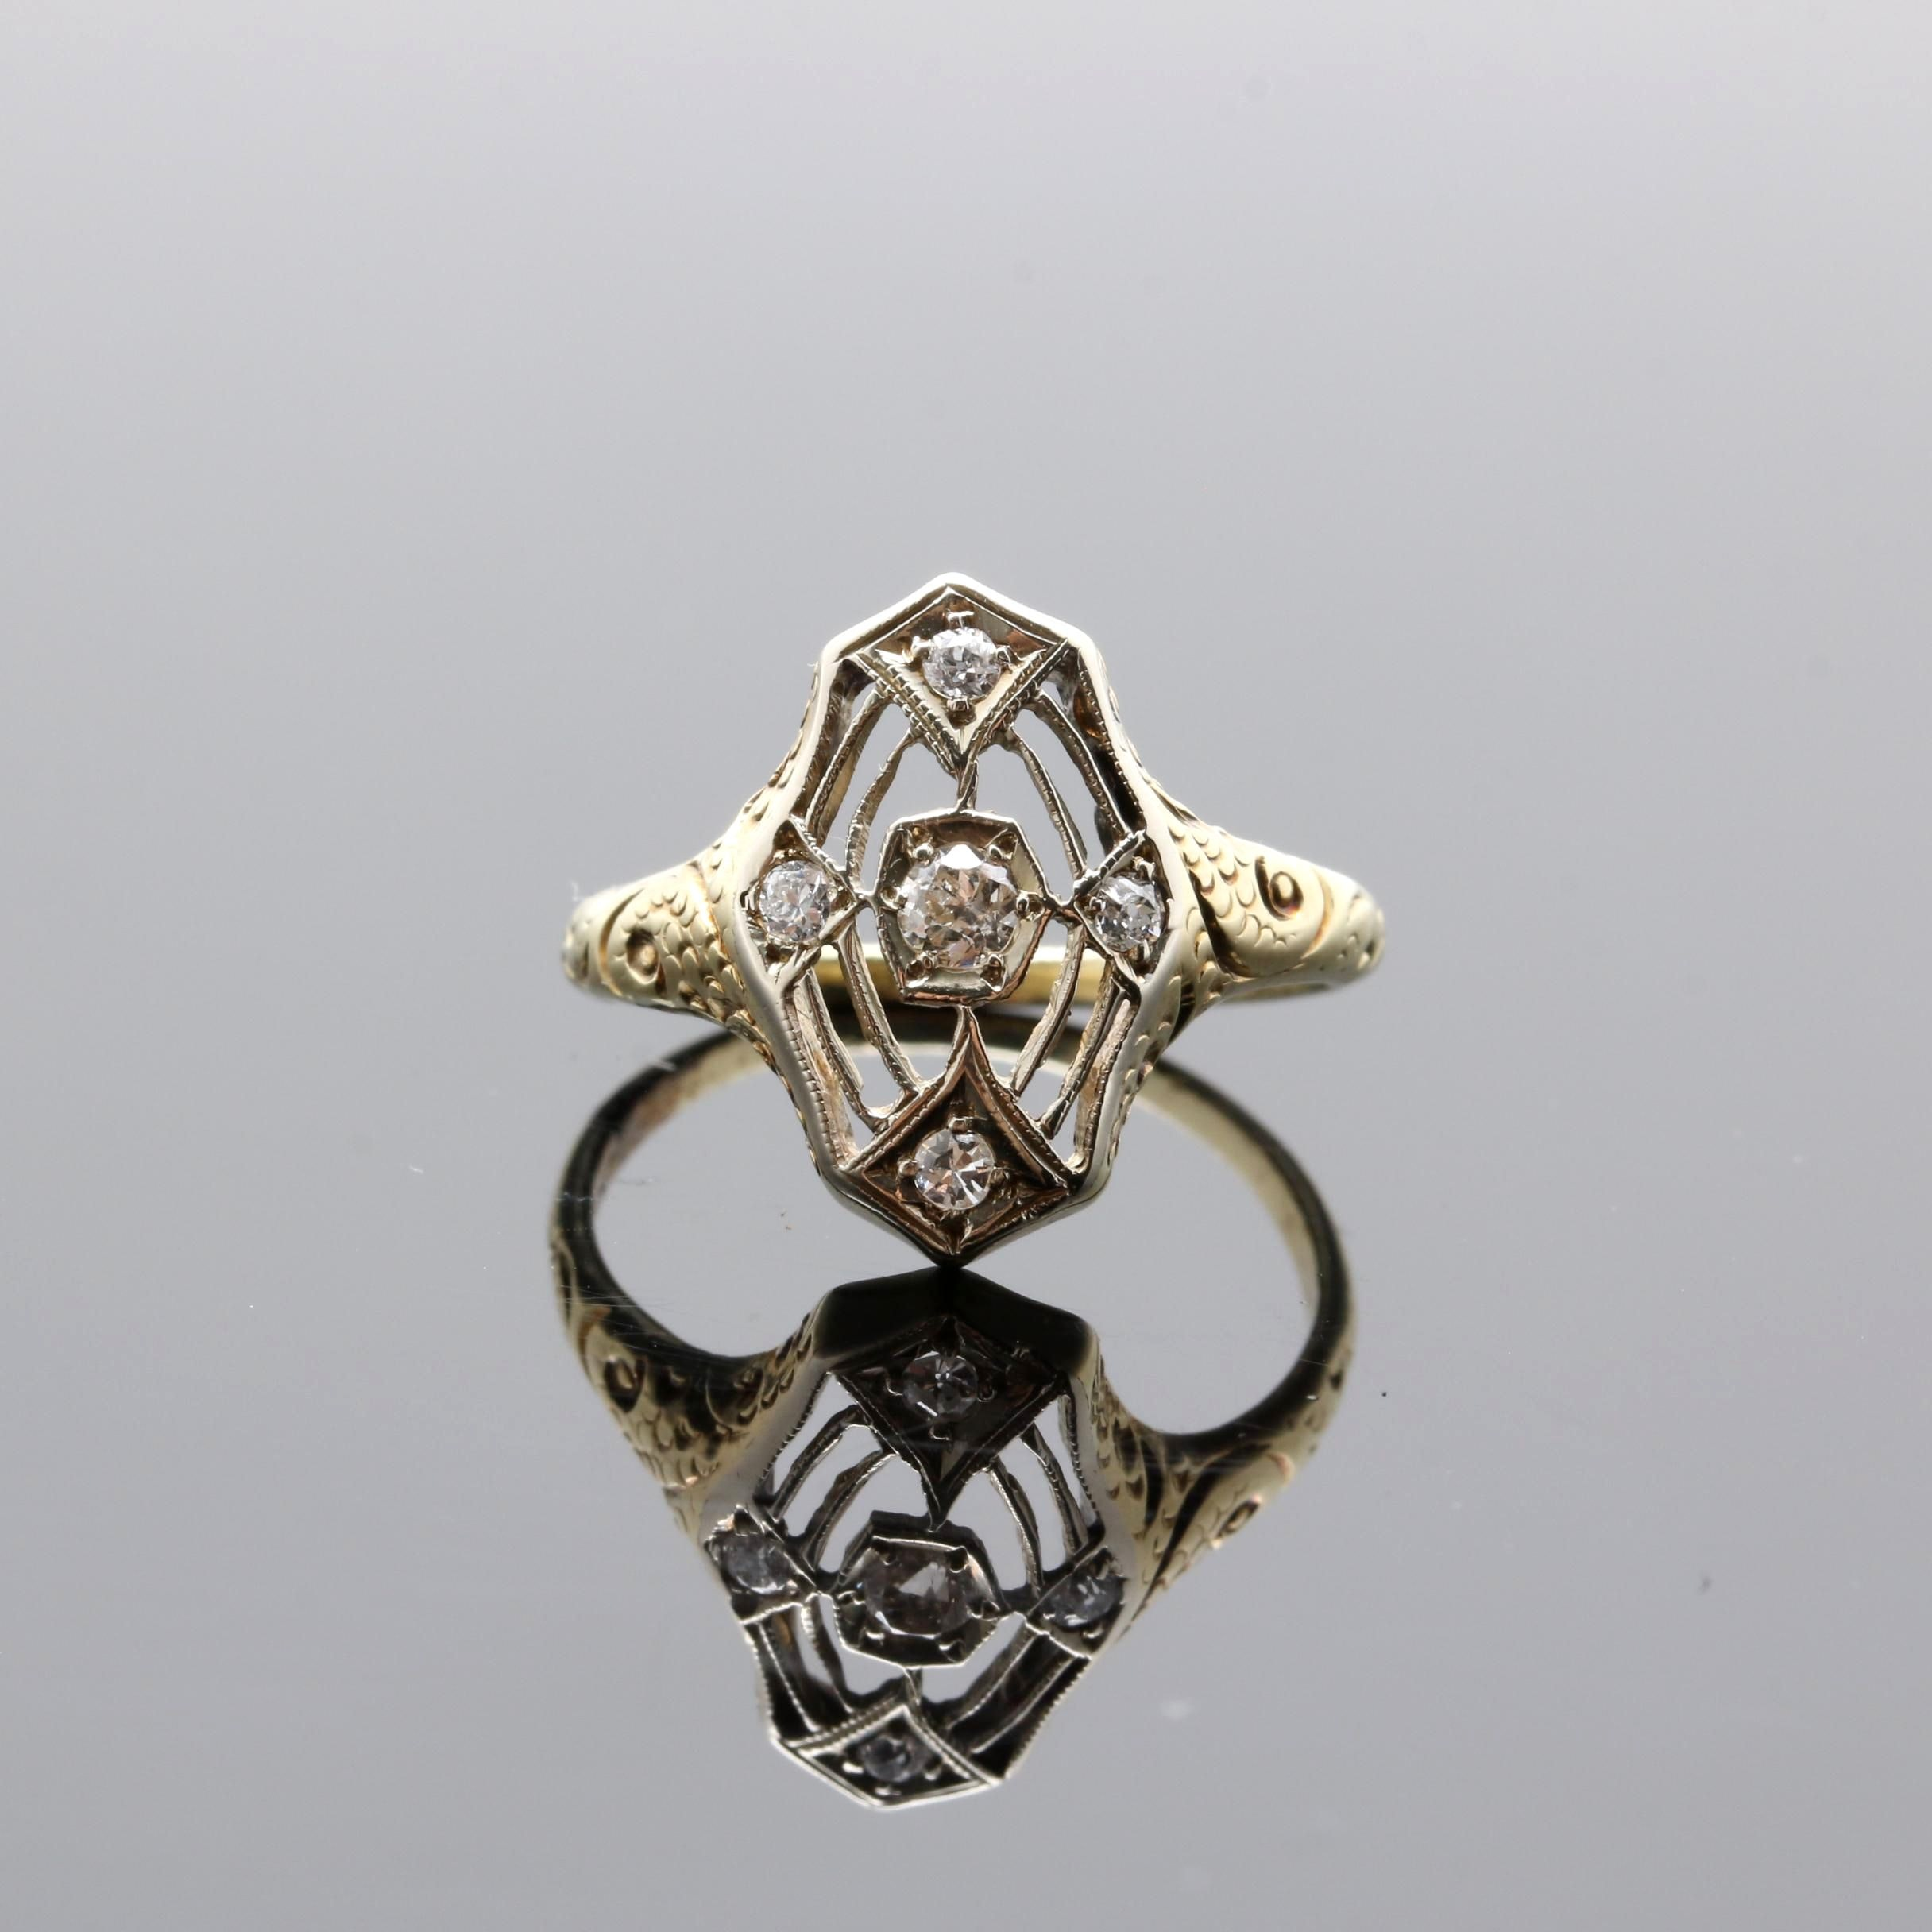 Art Deco 14K Yellow Gold Diamond Ring